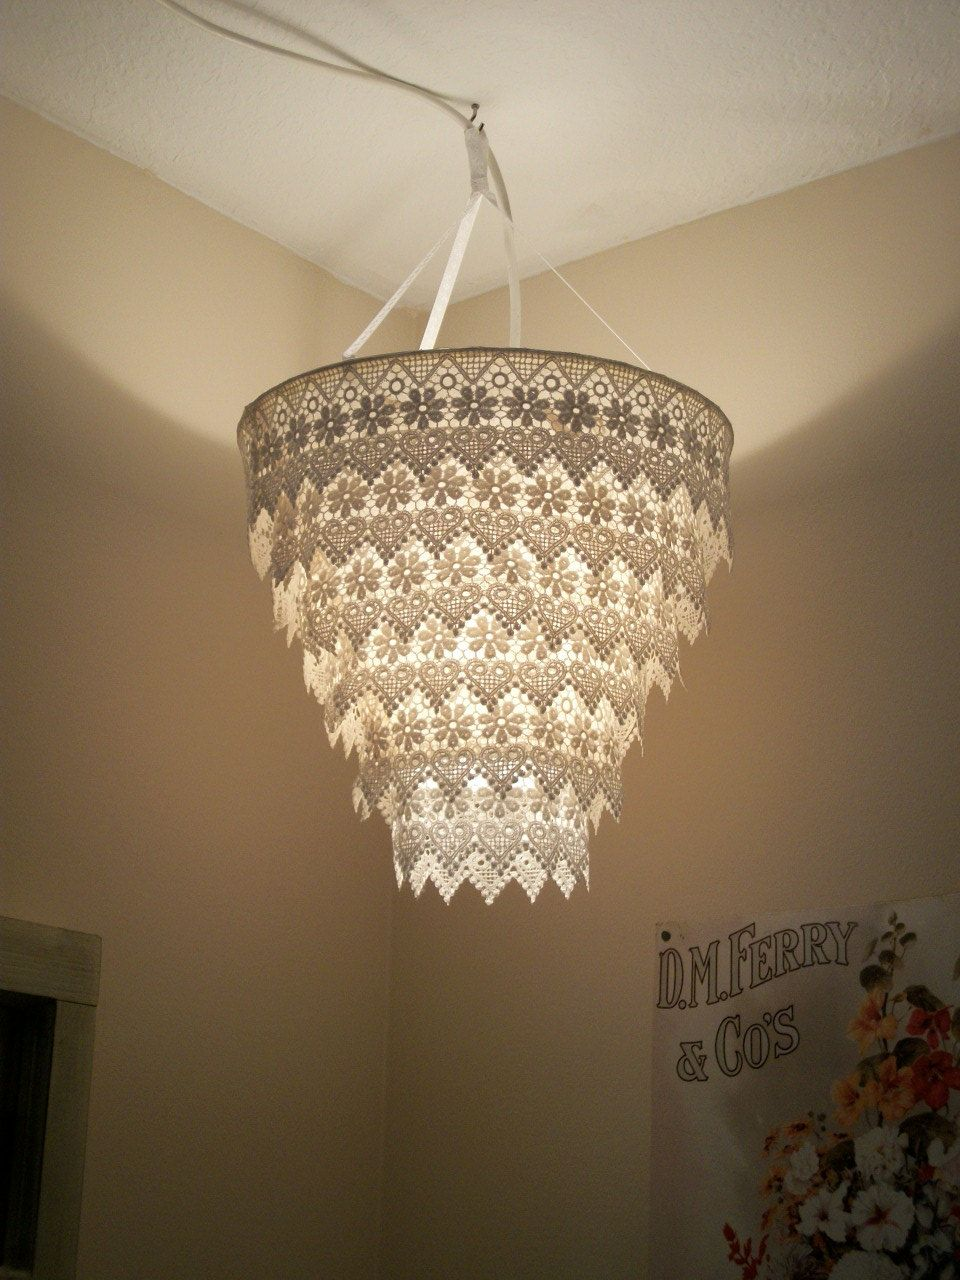 Venise lace faux chandelier pendant lamp shade ivory pinterest venise lace faux chandelier pendant lamp shade ivory 3000 via etsy but really diy greentooth Images